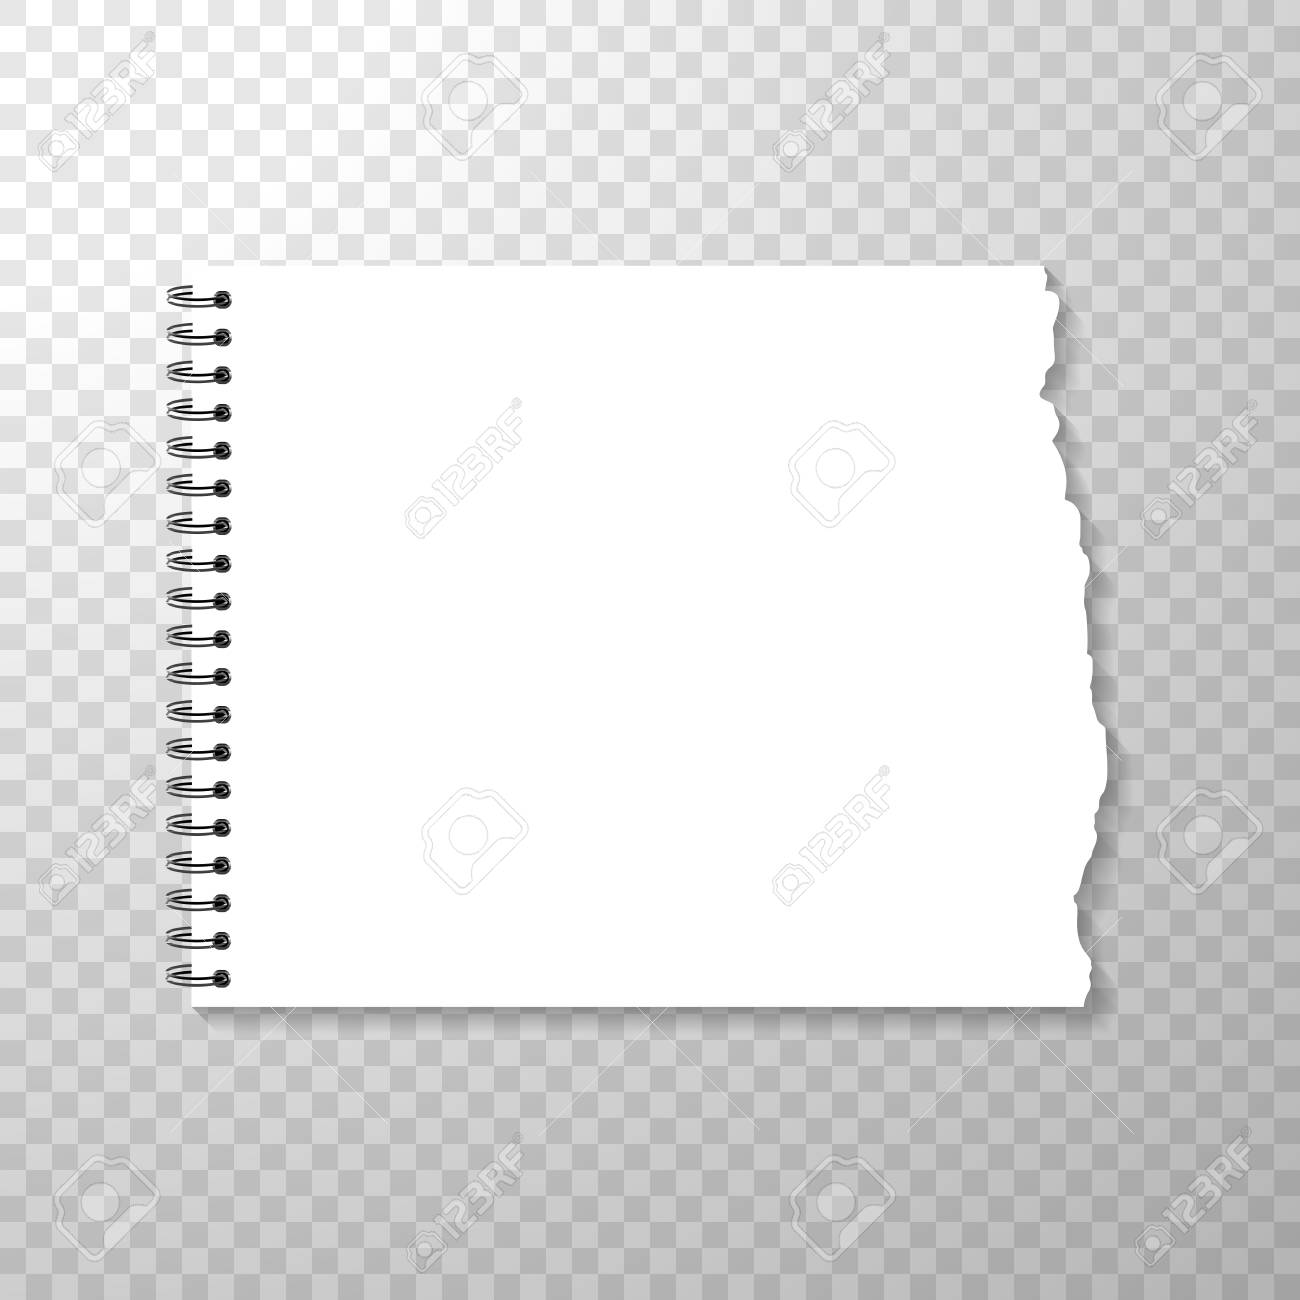 torn piece of horizontal squared paper from spiral bound notebook